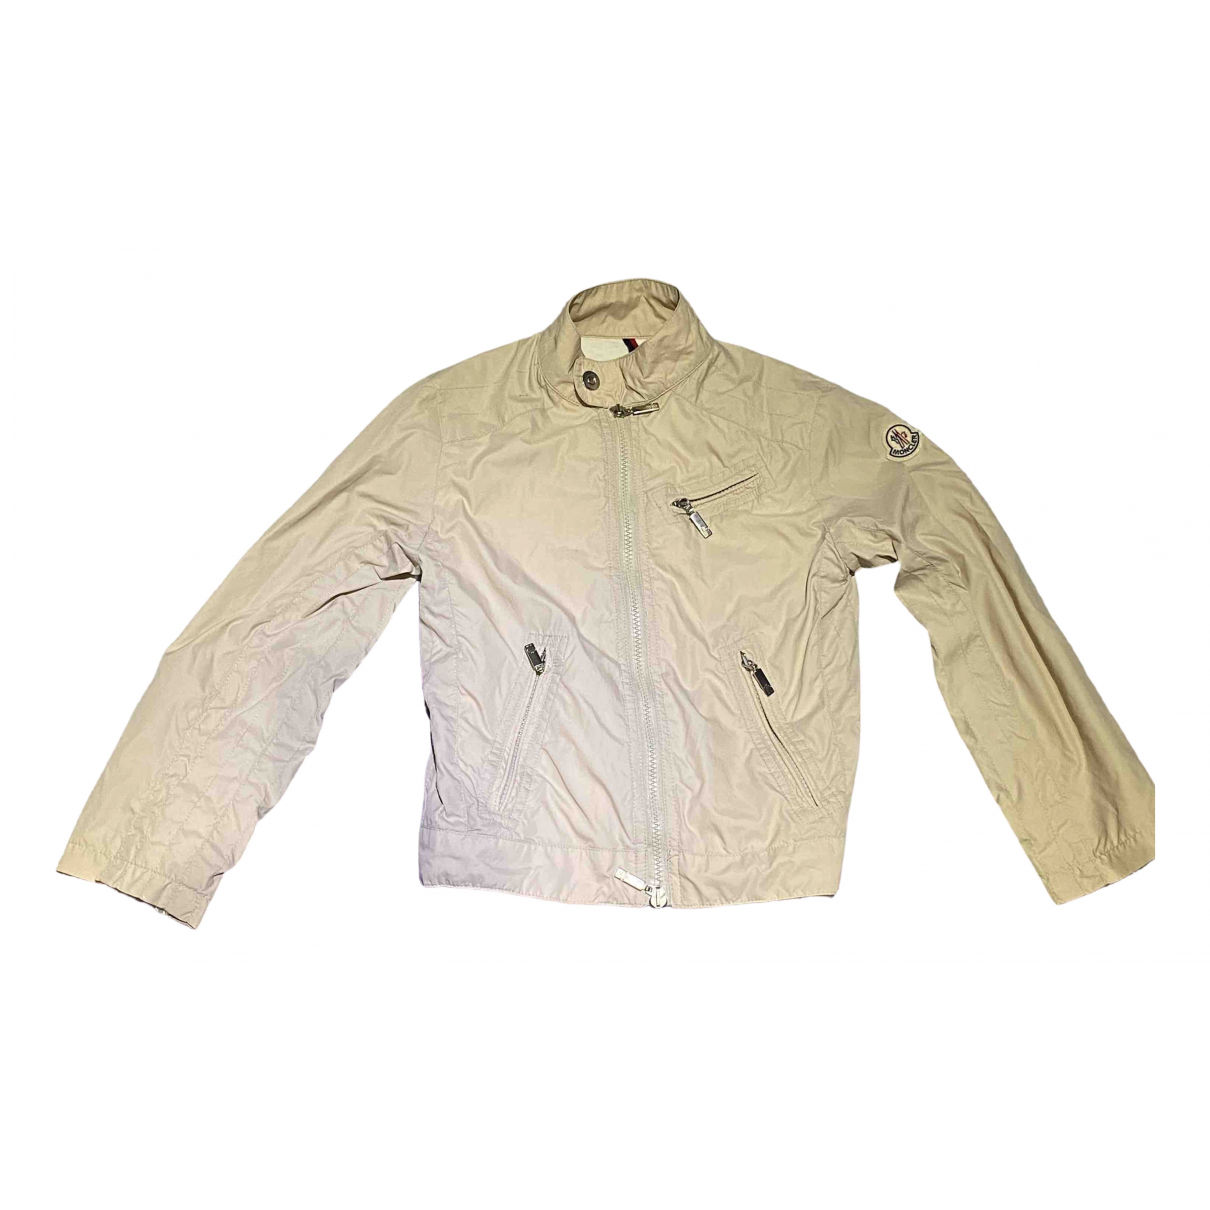 Moncler \N Beige Cotton jacket & coat for Kids 8 years - up to 128cm FR